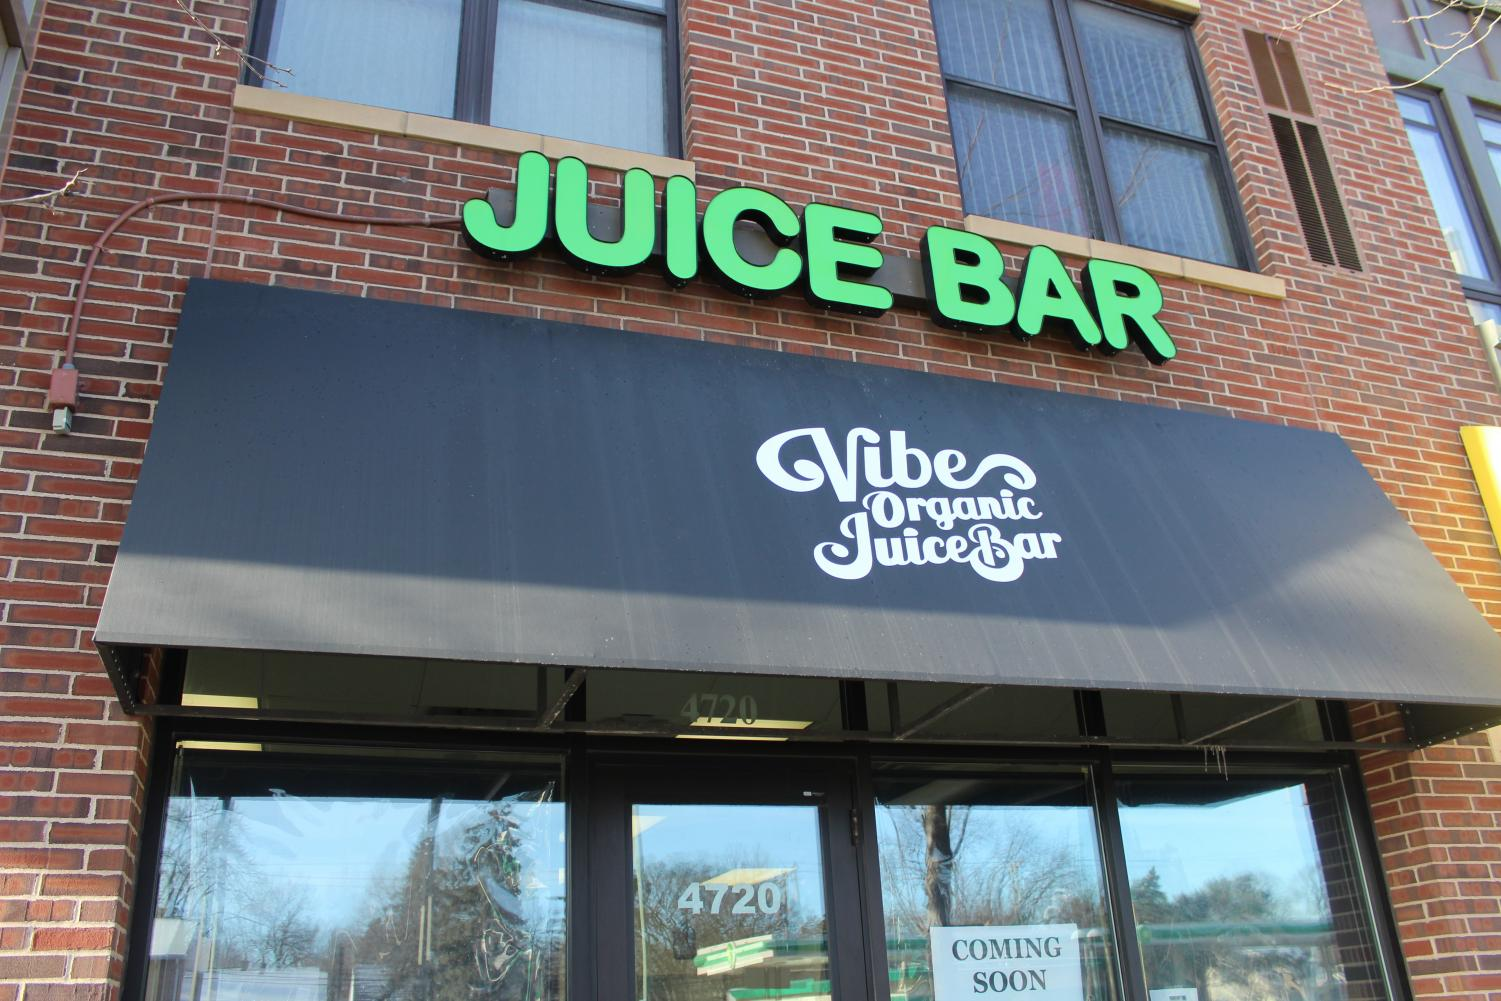 Vibe Organic Juice Bar opens on Excelsior blvd March 19. The juice bar will serve a variety of juices and organic foods.